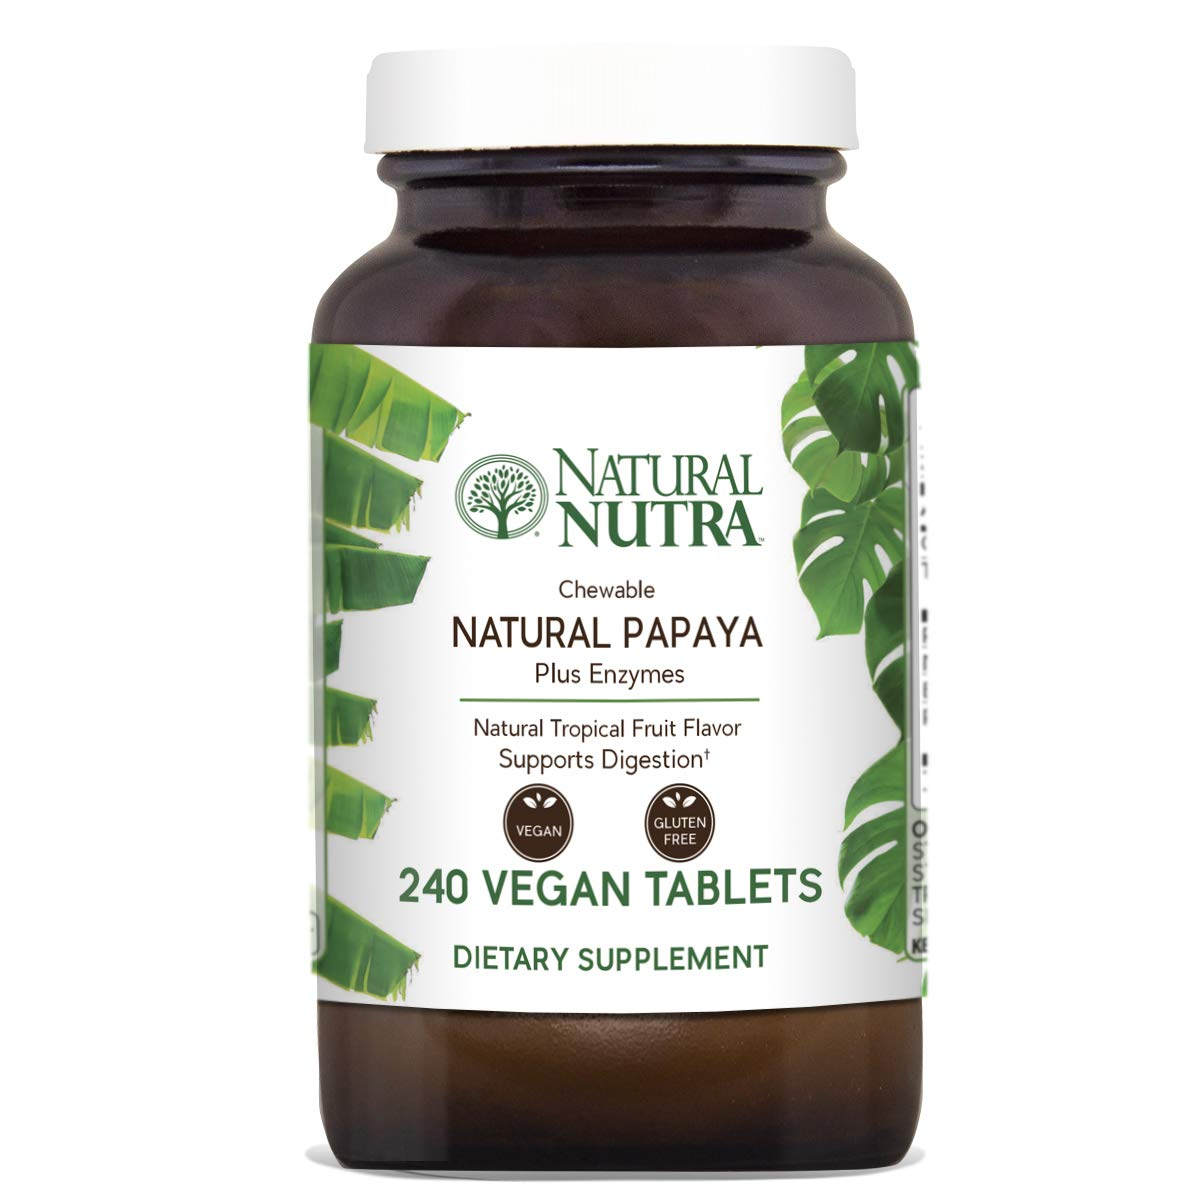 Natural Nutra Papaya Chewable Plant Enzymes for Digestion, Bloating, Gas and Constipation Relief with Papain, Protease, Bromelain, Amylase and Protease, 240 Chewable Vegan Tablets